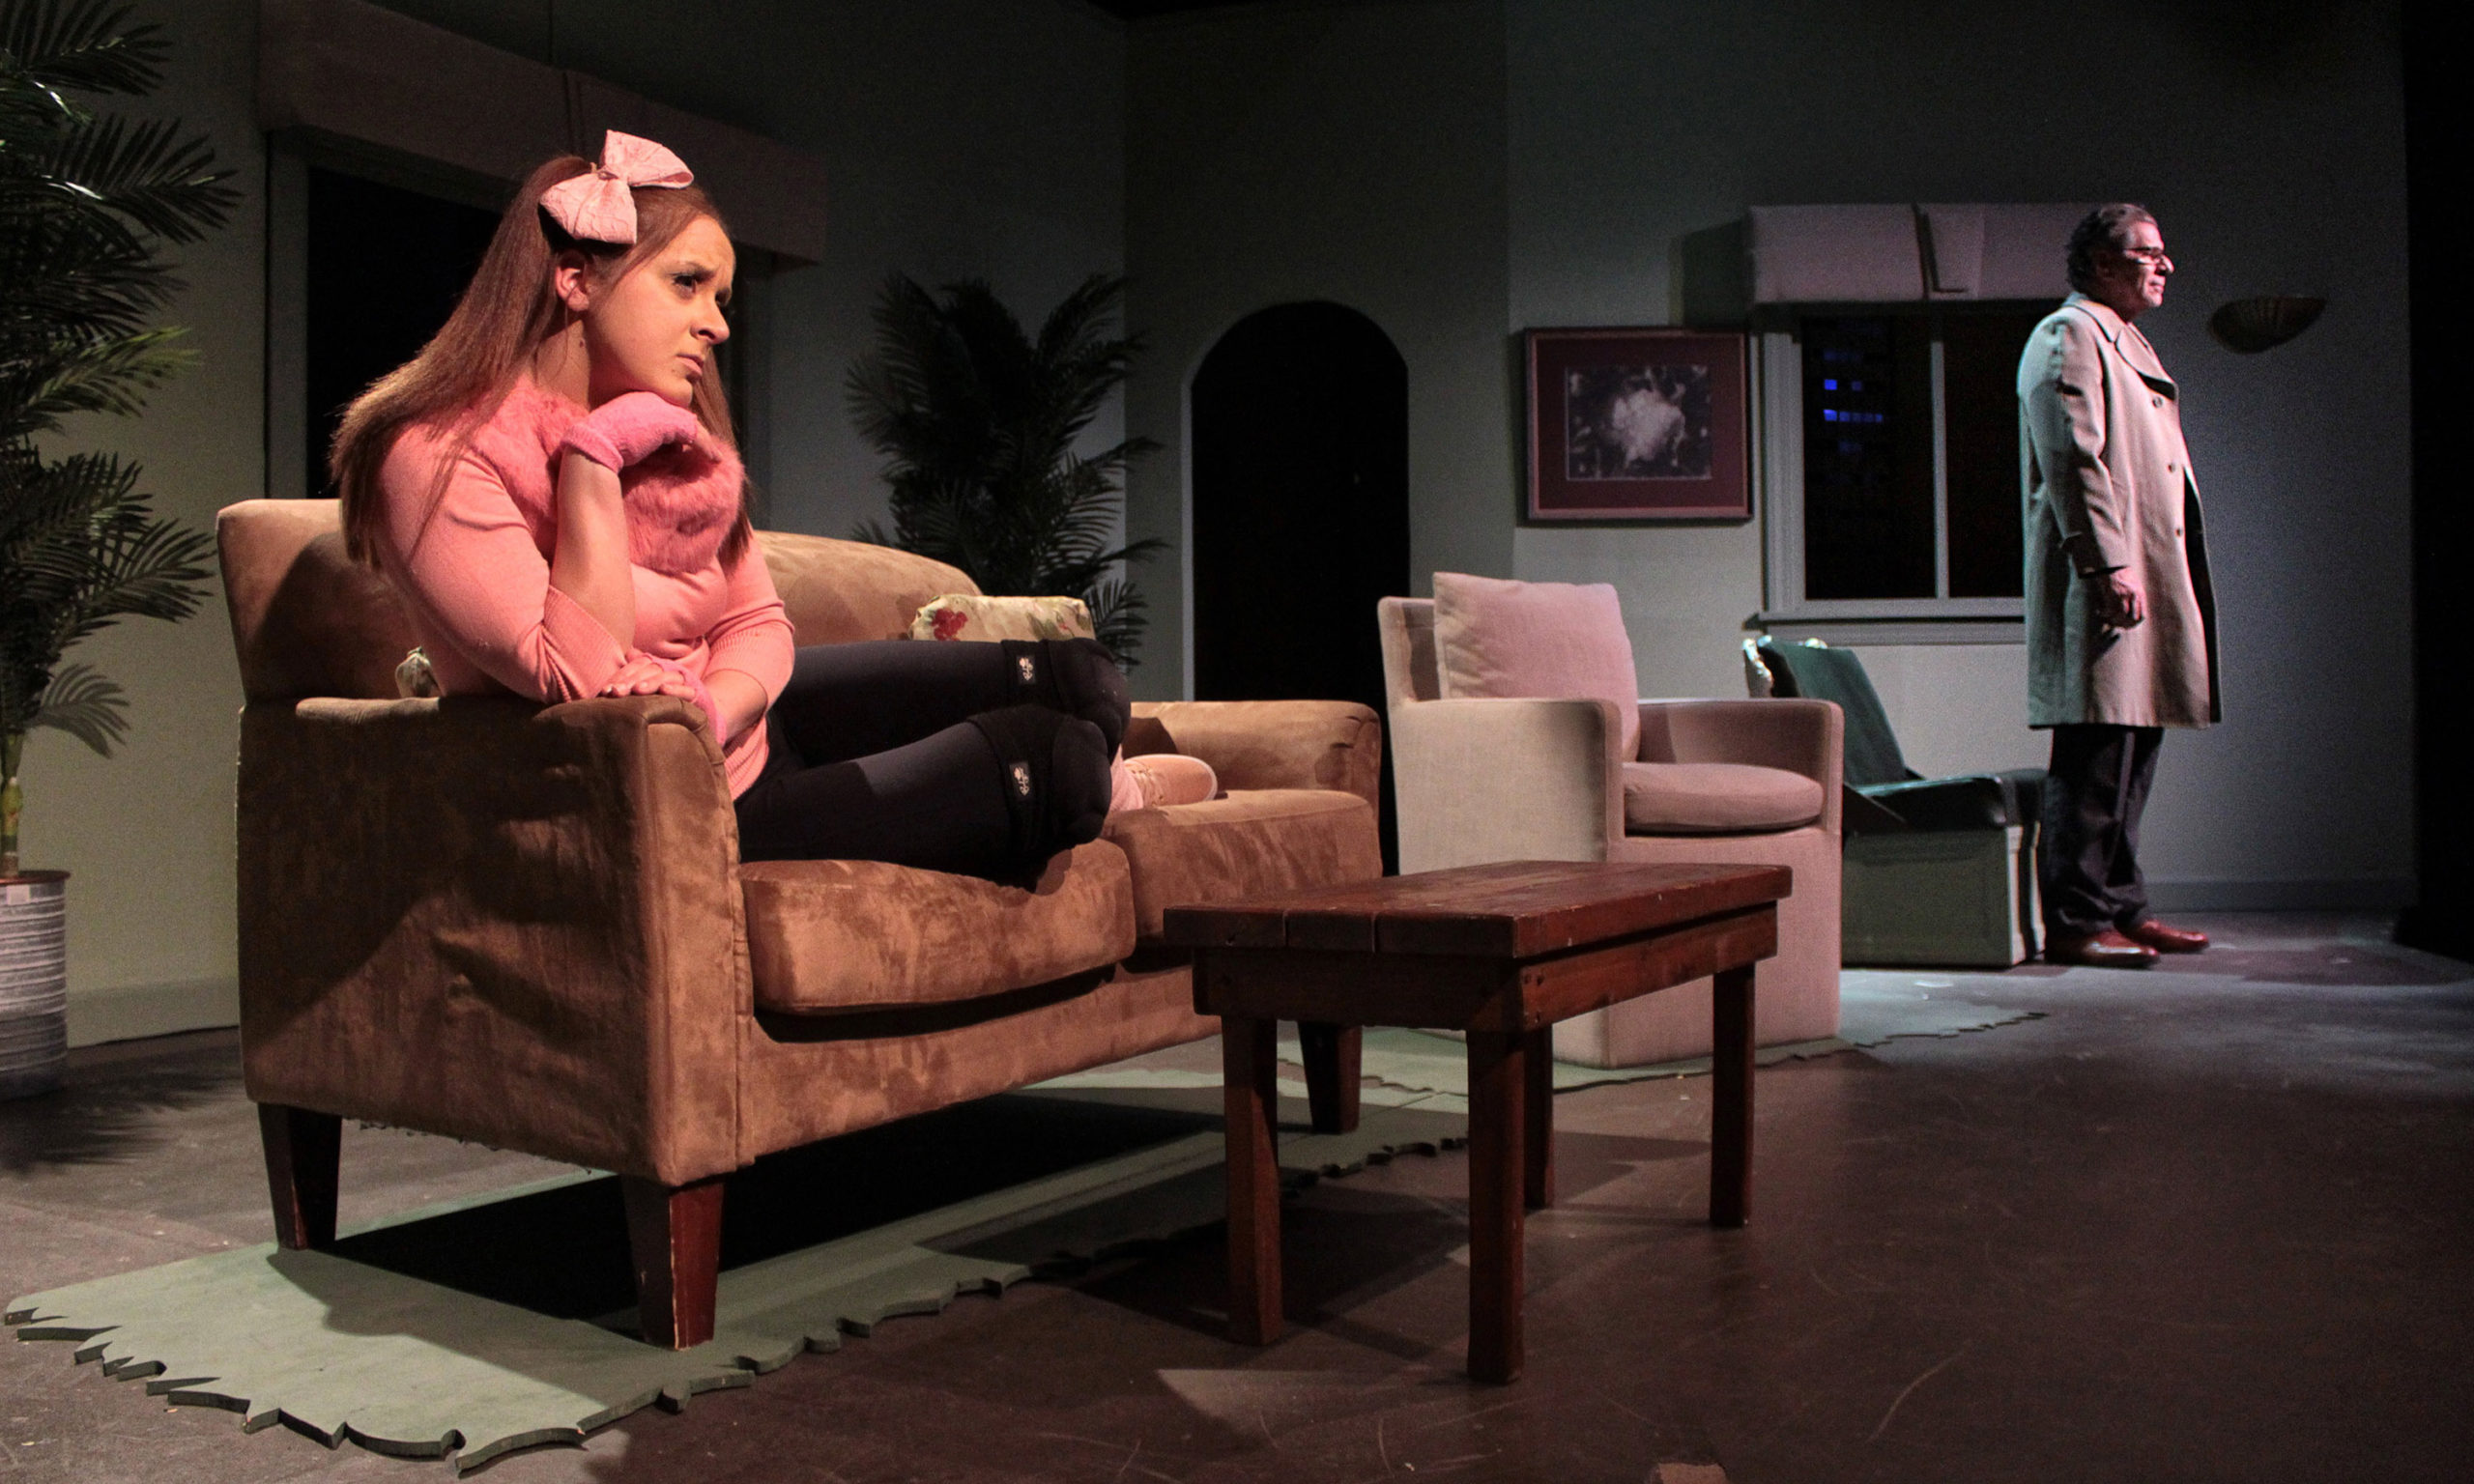 """In March 2020, Hampton Theatre Company (HTC) was set to open A.R. Gurney's """"Sylvia"""" with Amanda Griemsmann in the title role and Edward Kassar as Greg when COVID-19 shut it down. On May 27, HTC will finally bring its production of """"Sylvia"""" to the stage with Griesmann still playing Sylvia, but with Greg being portrayed by a surprise HTC performer."""